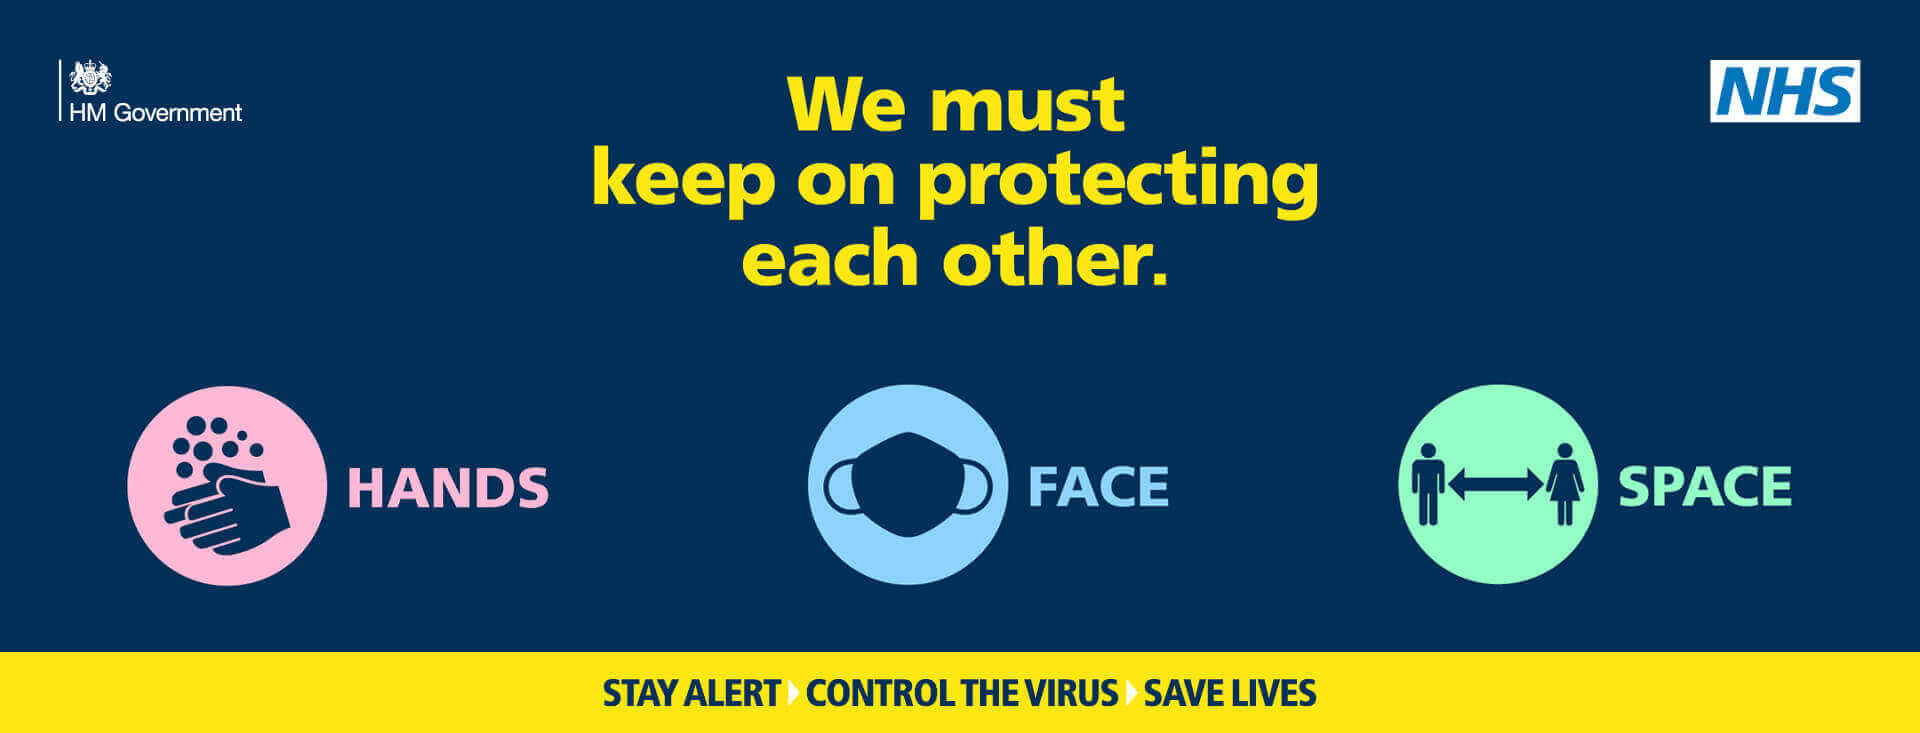 PHE resources banner - Stay alert, Control the Virus, Save lives